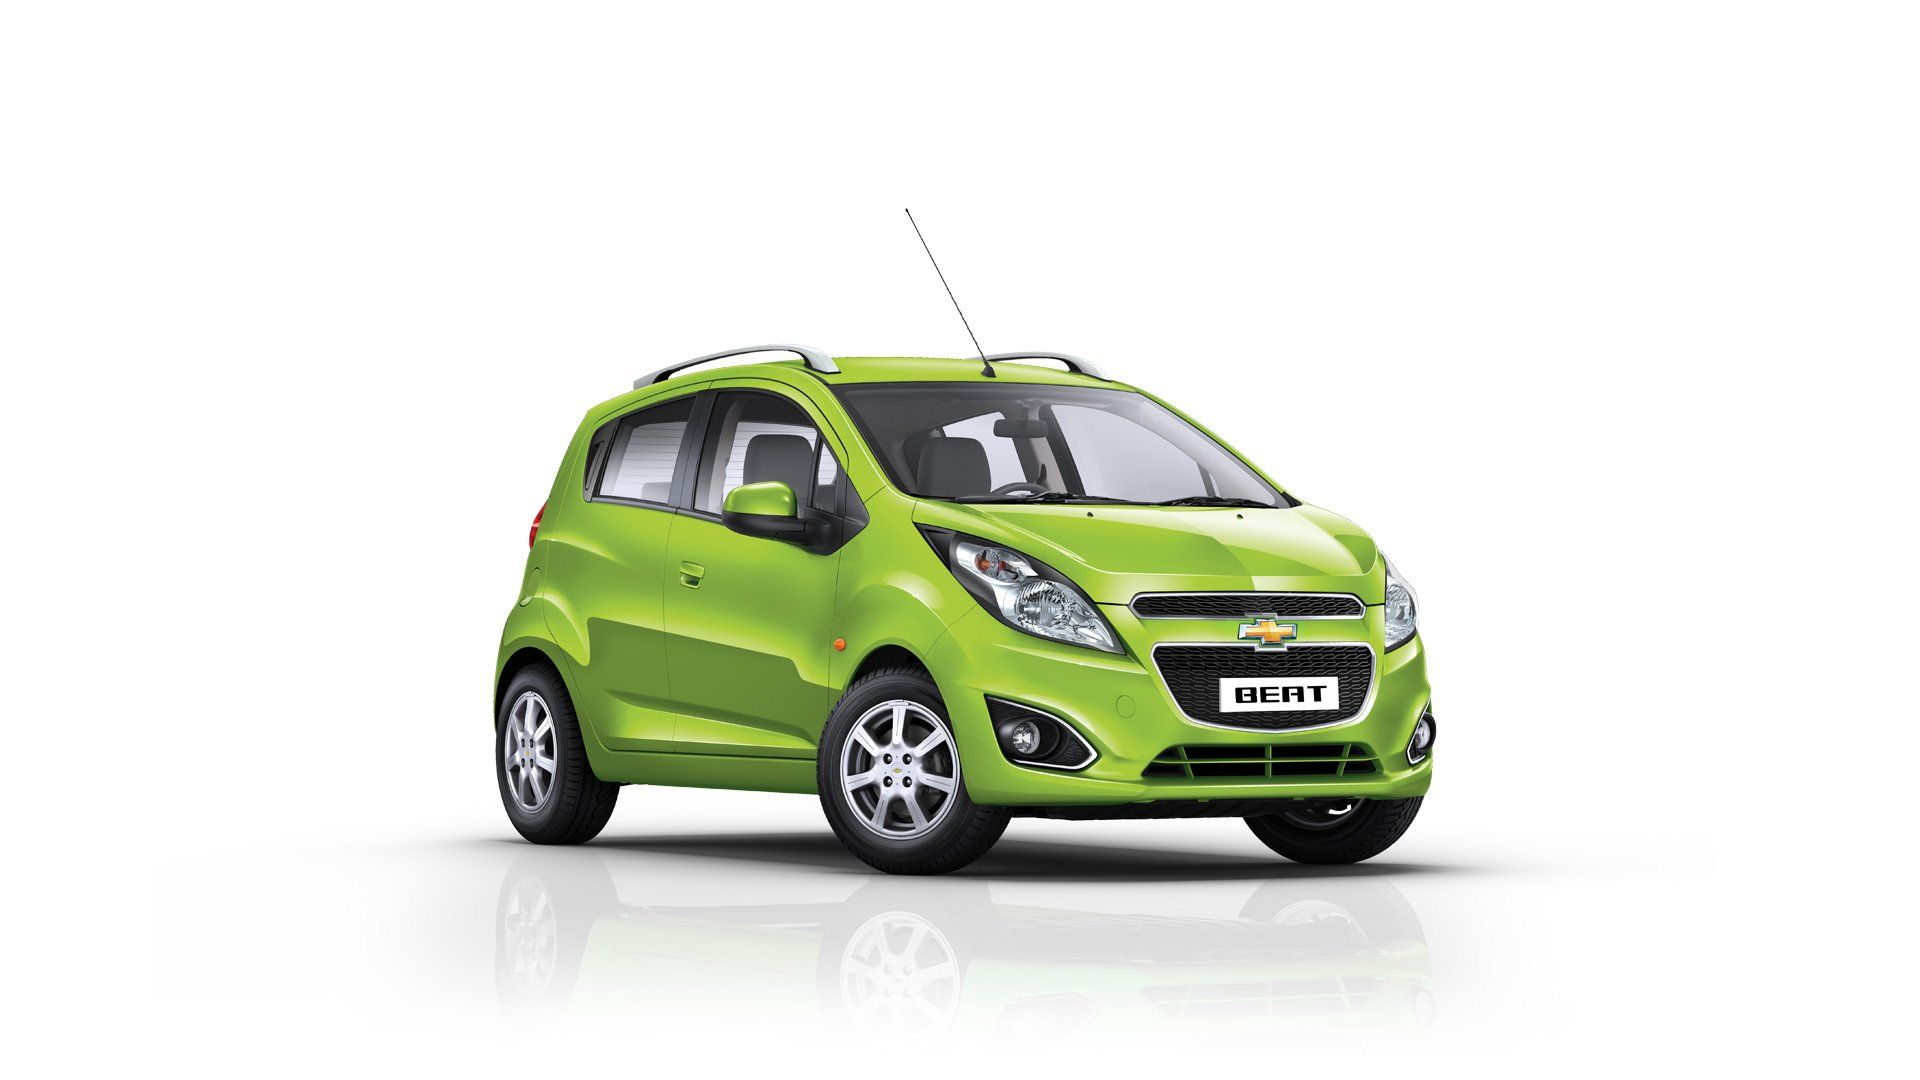 Chevrolet Beat Chevrolet, Car, Chevrolet spark